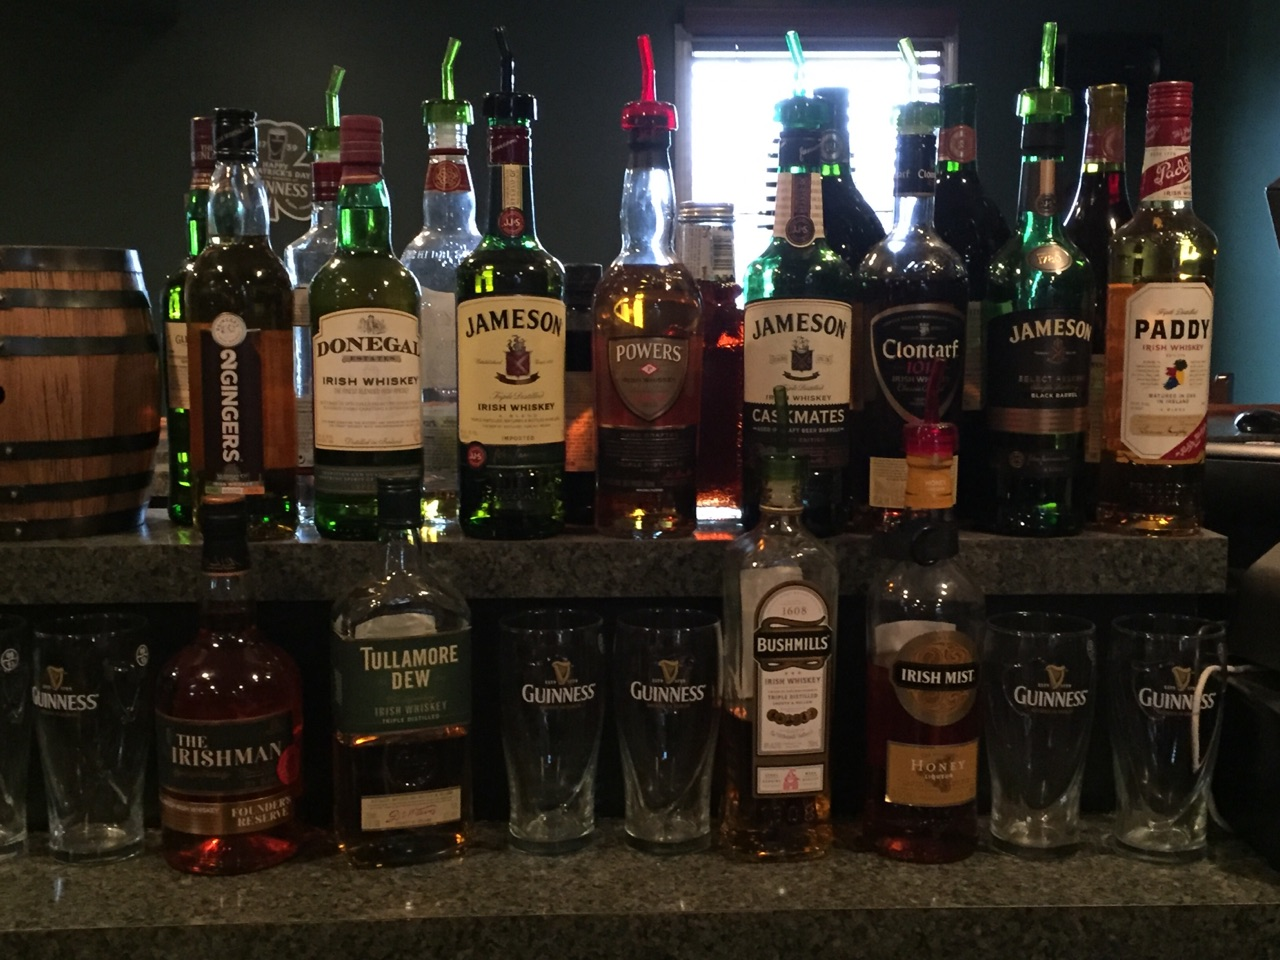 Bottles of several types of whisky, and beer Glasses, on the bar.